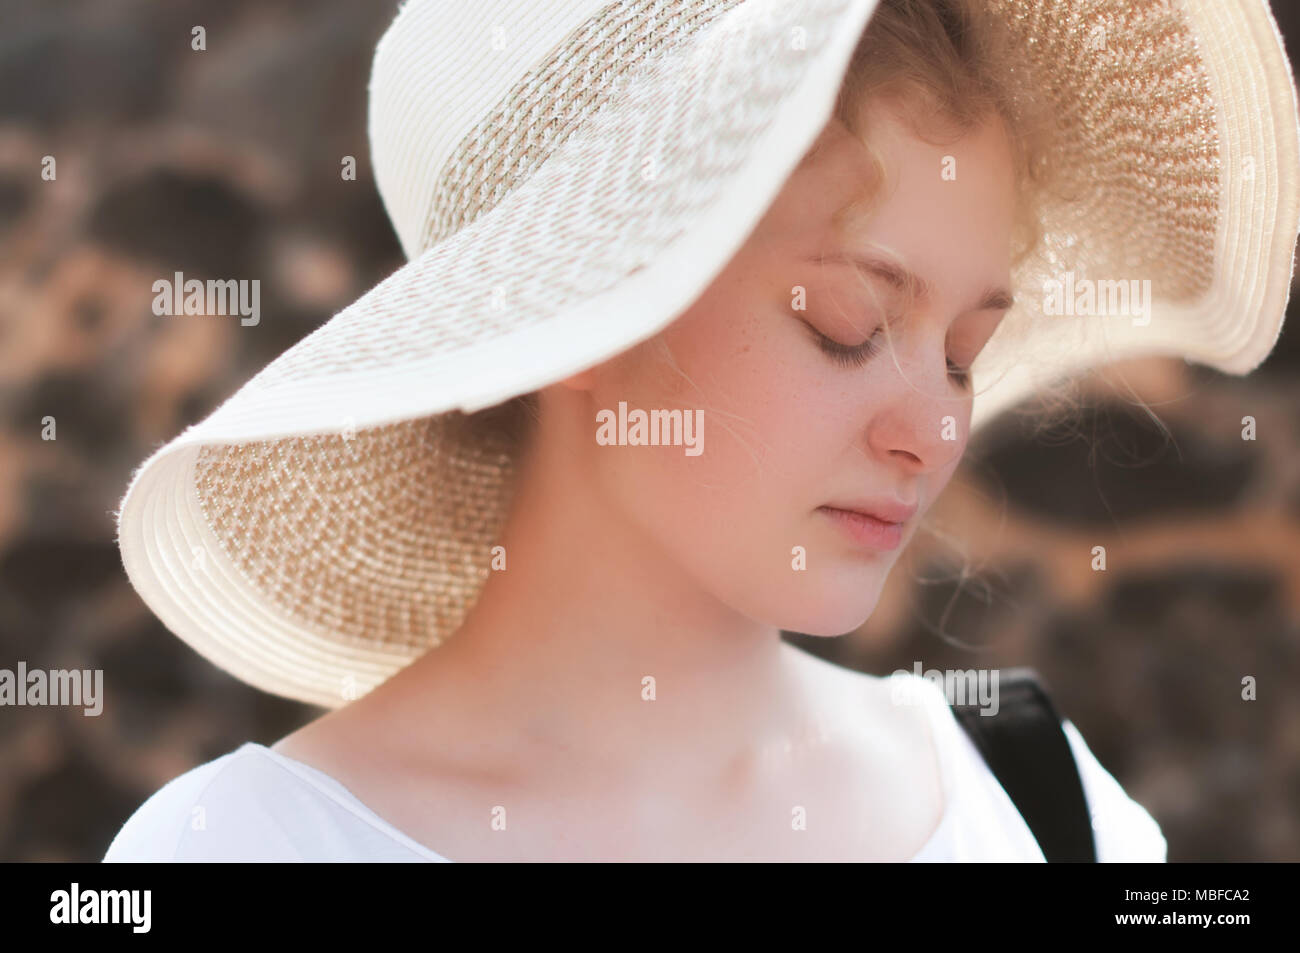 b82f8549748 A natural warm portrait of a beautiful young blonde girl in a summer straw  hat with